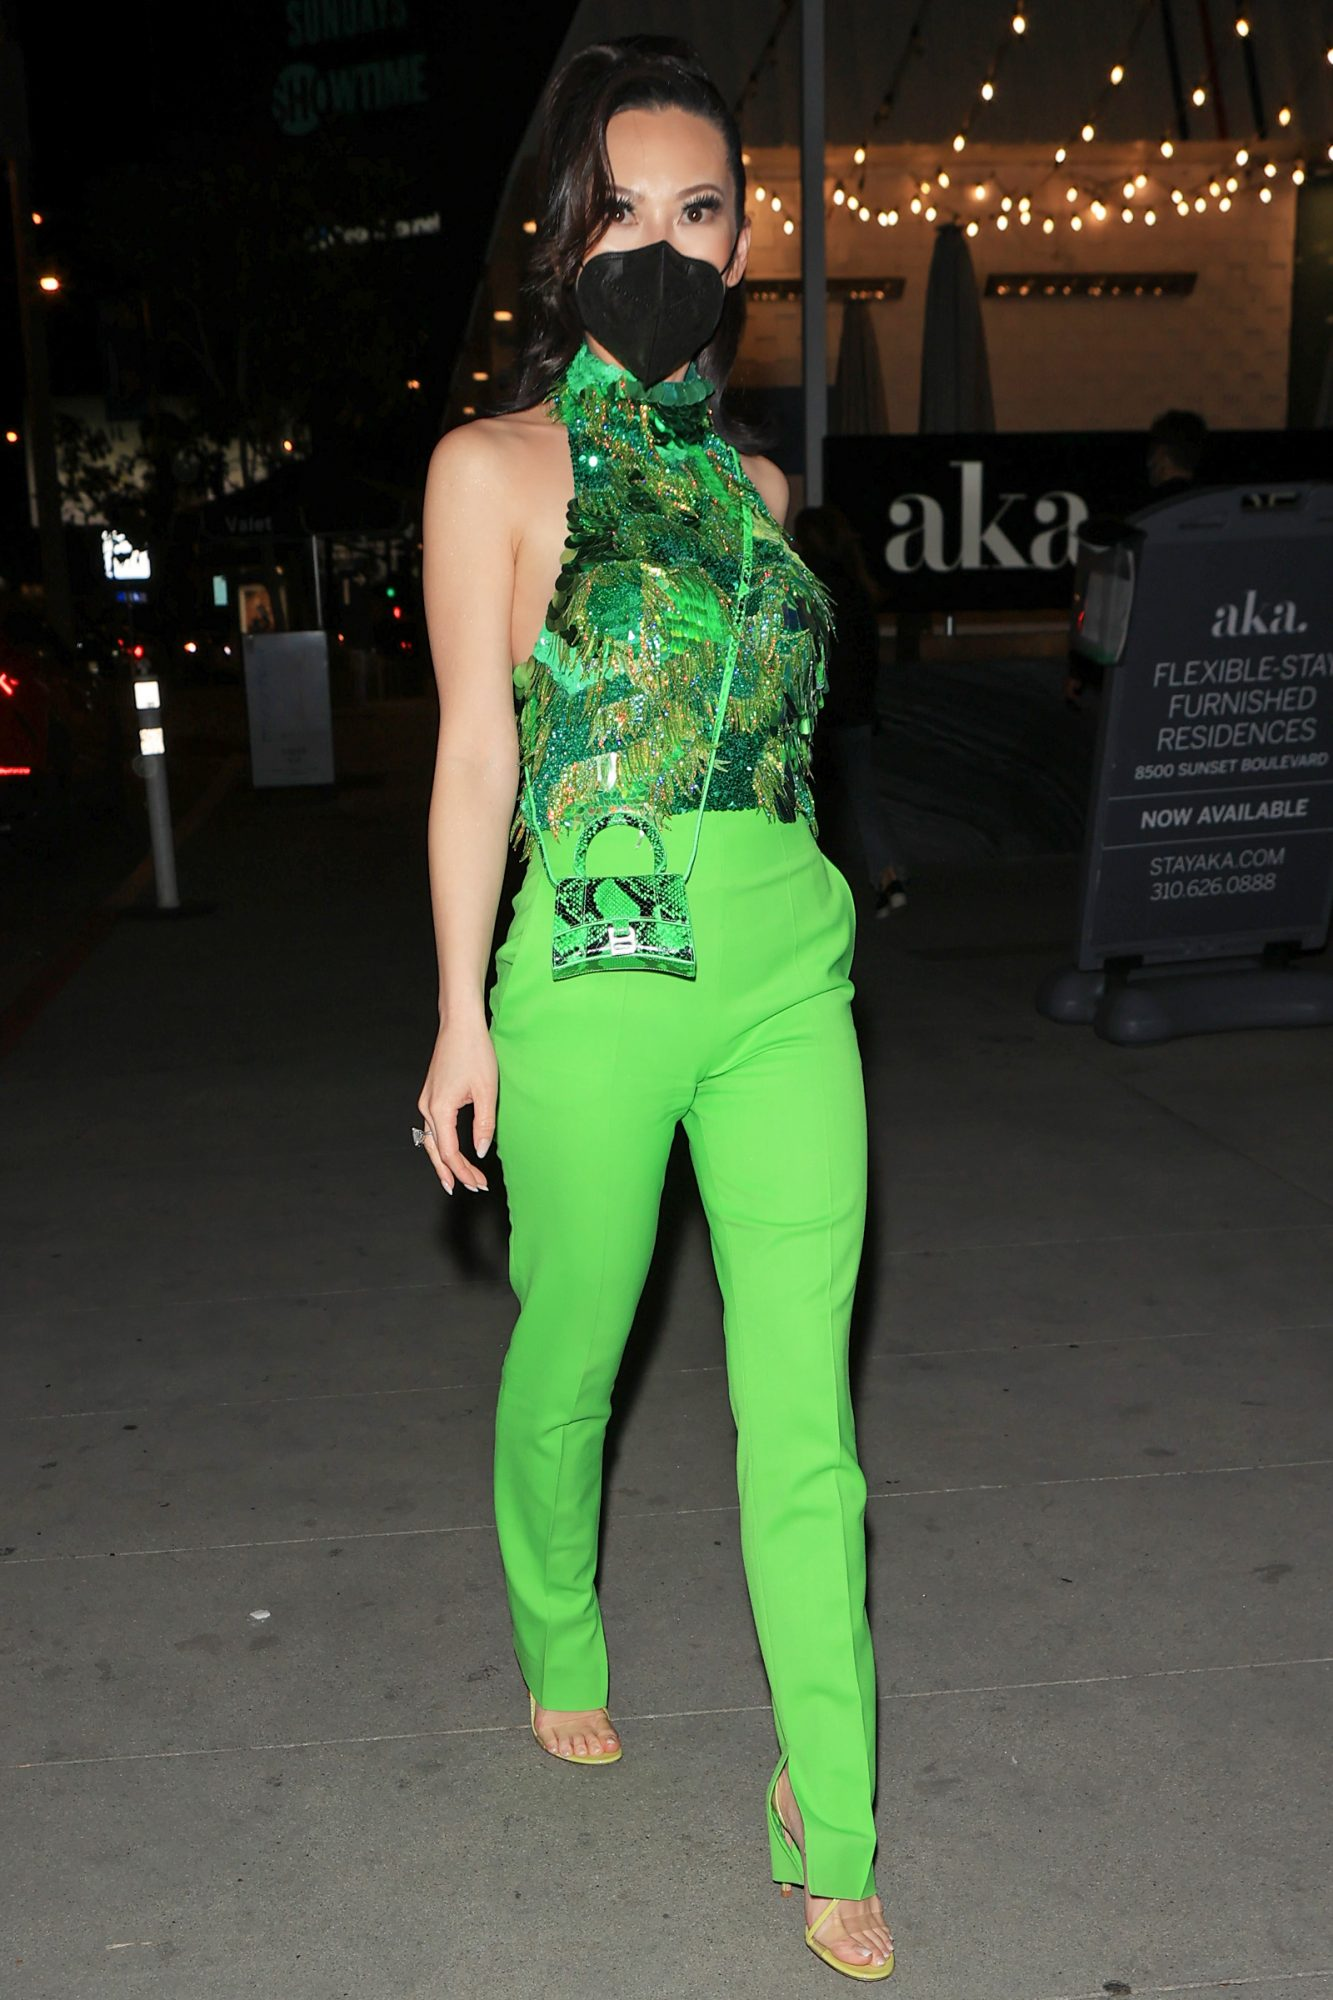 Christine Chiu stuns in a green outfit as she heads to dinner at Tesse